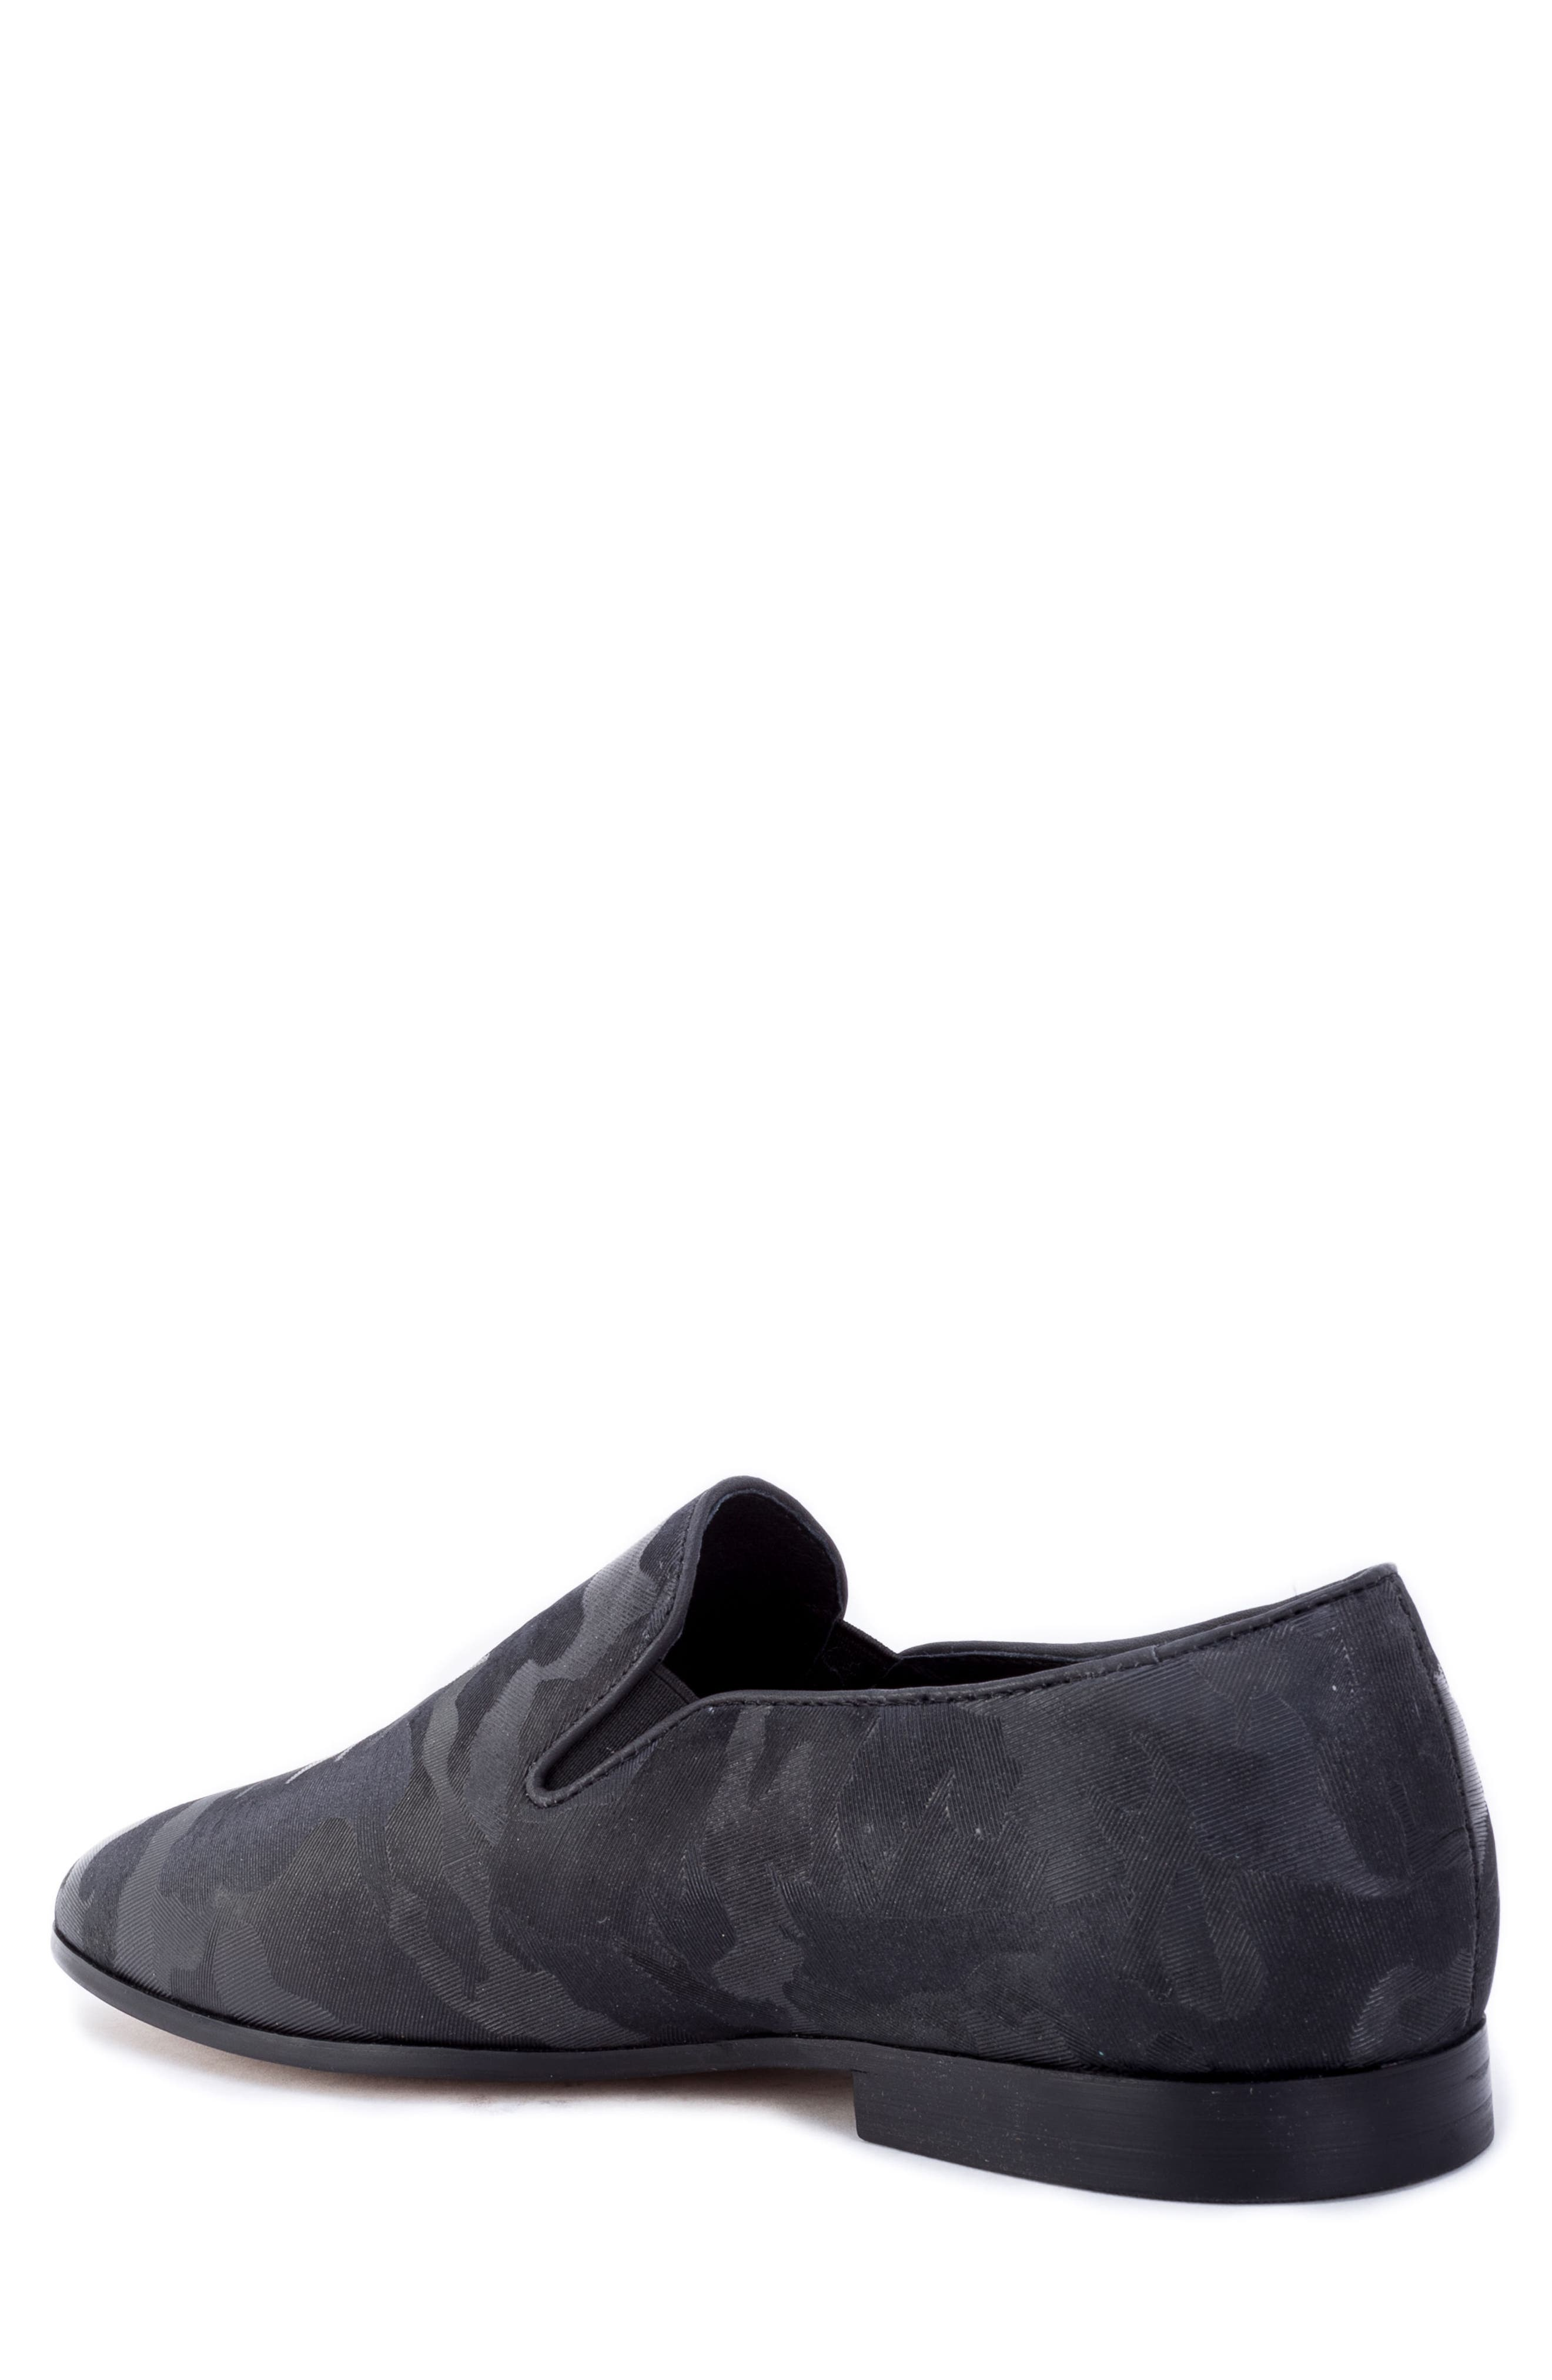 Fry Camouflage Venetian Loafer,                             Alternate thumbnail 2, color,                             BLACK FABRIC